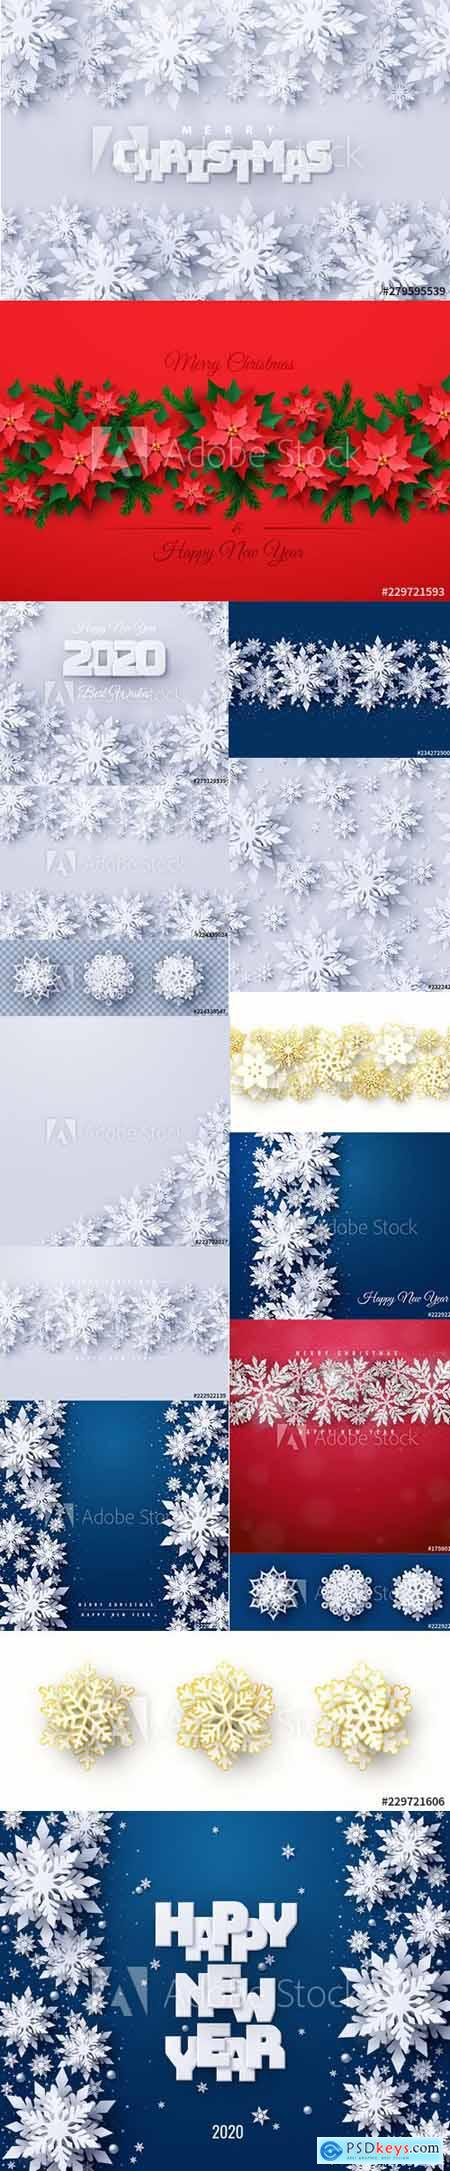 Vector set of New Year 2020 and Christmas Design Backgrounds Vol3